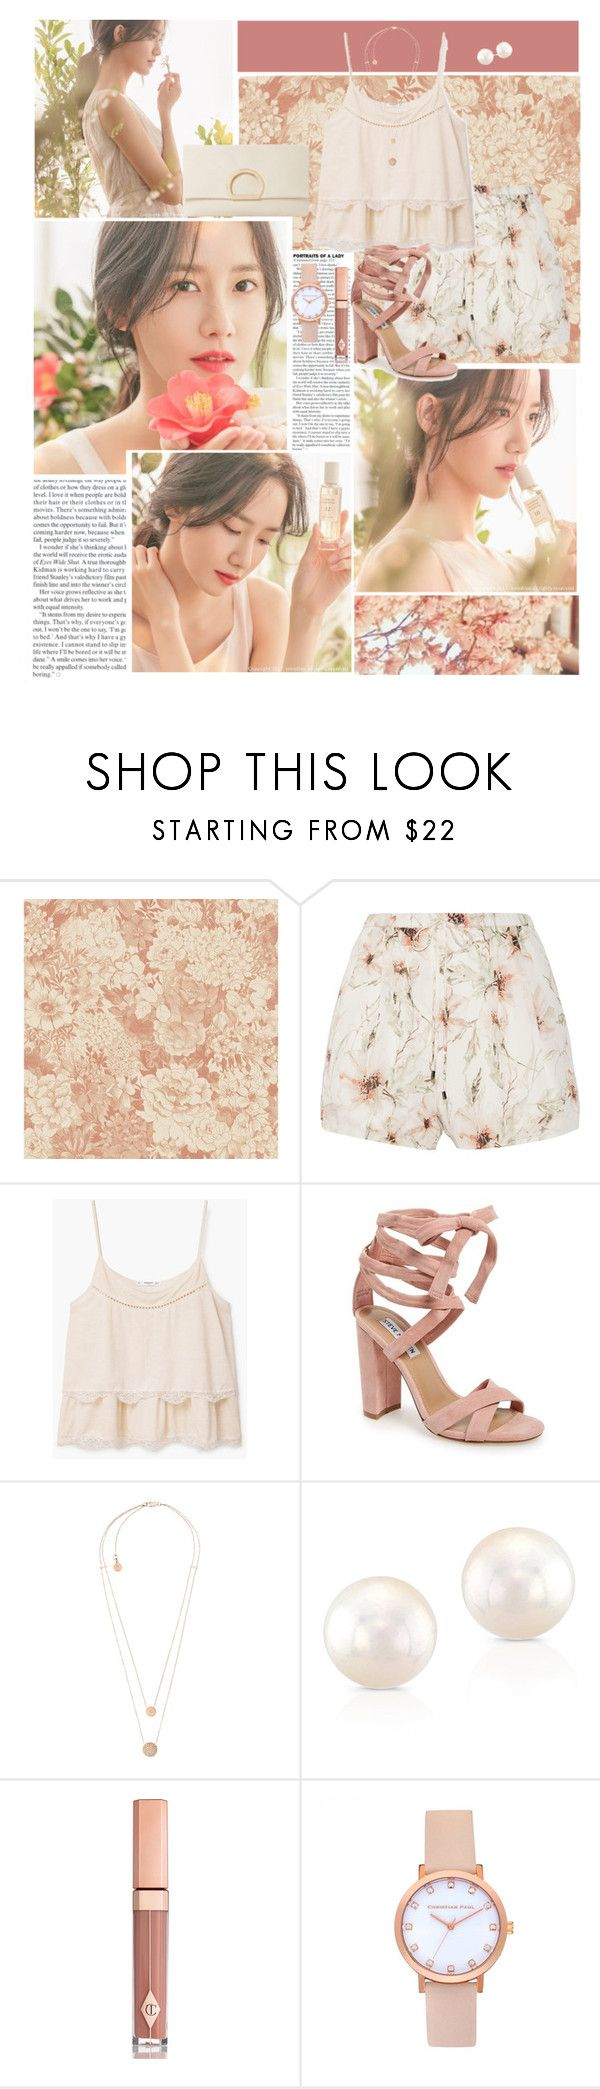 """I would like to meet you, even in a dream"" by angiielf ❤ liked on Polyvore featuring Innisfree, Haute Hippie, MANGO, Steve Madden, Michael Kors, Anne Sisteron, Charlotte Tilbury, Dune, kpop and Snsd"